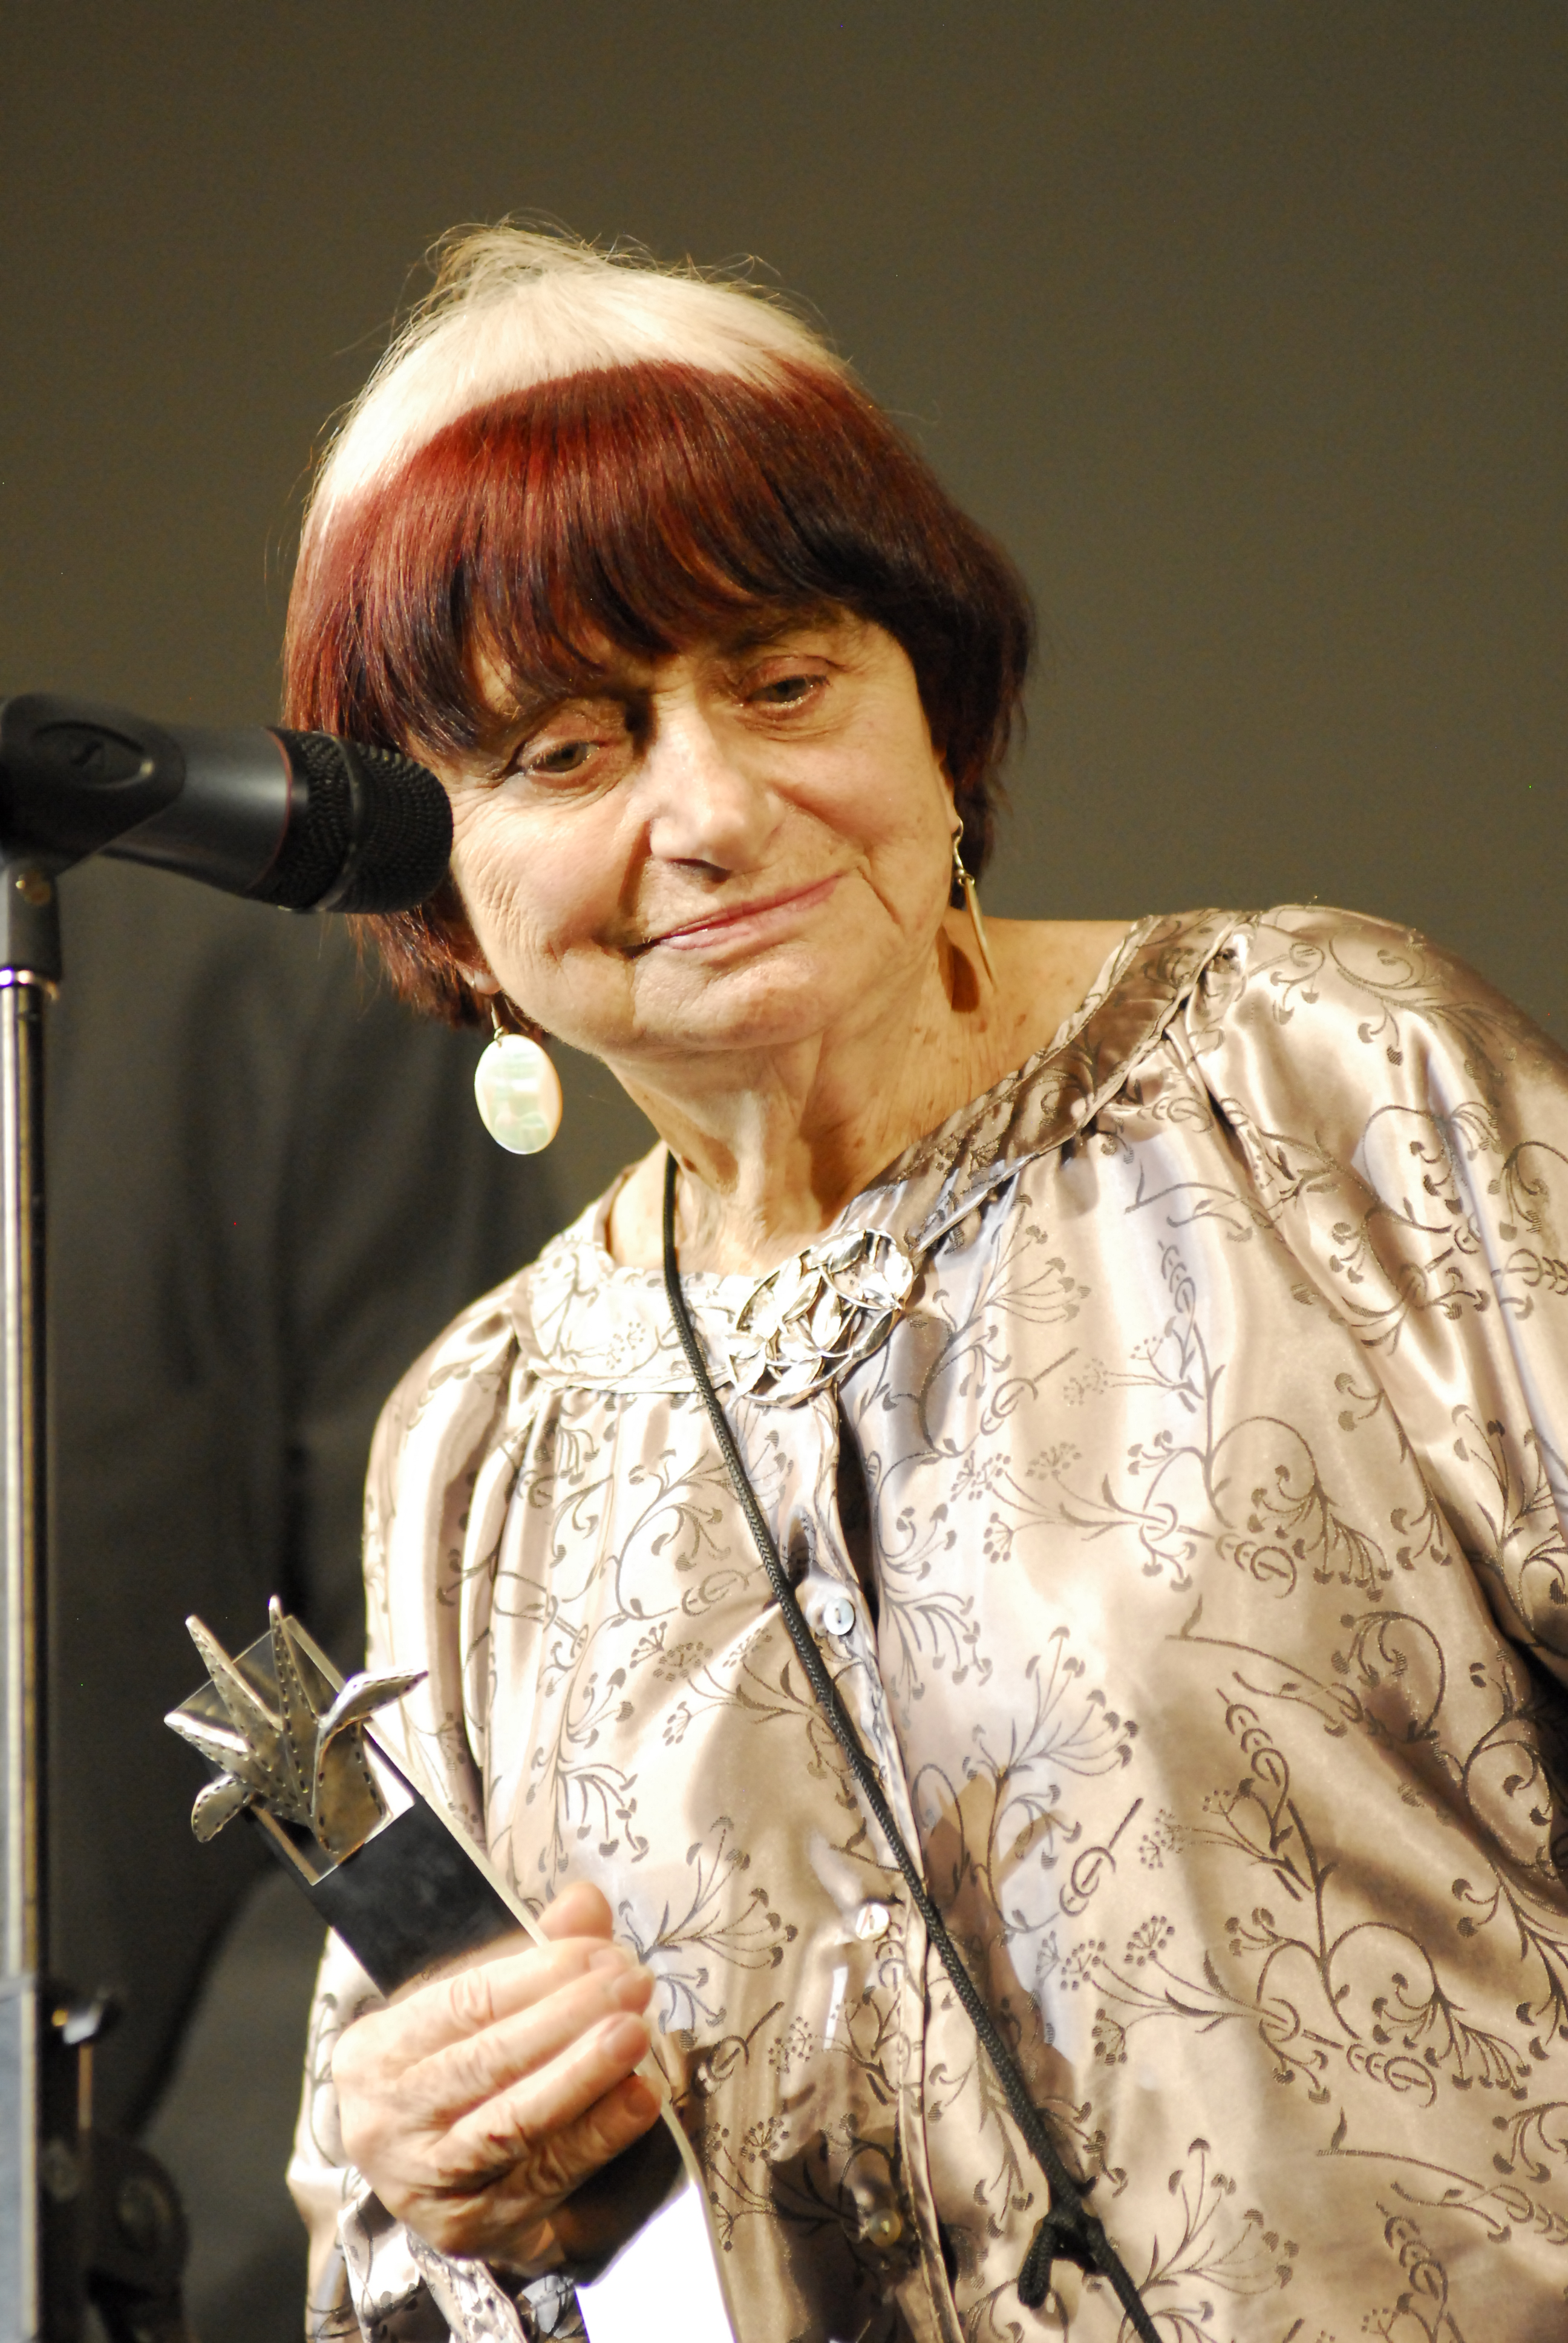 Image of Agnès Varda from Wikidata